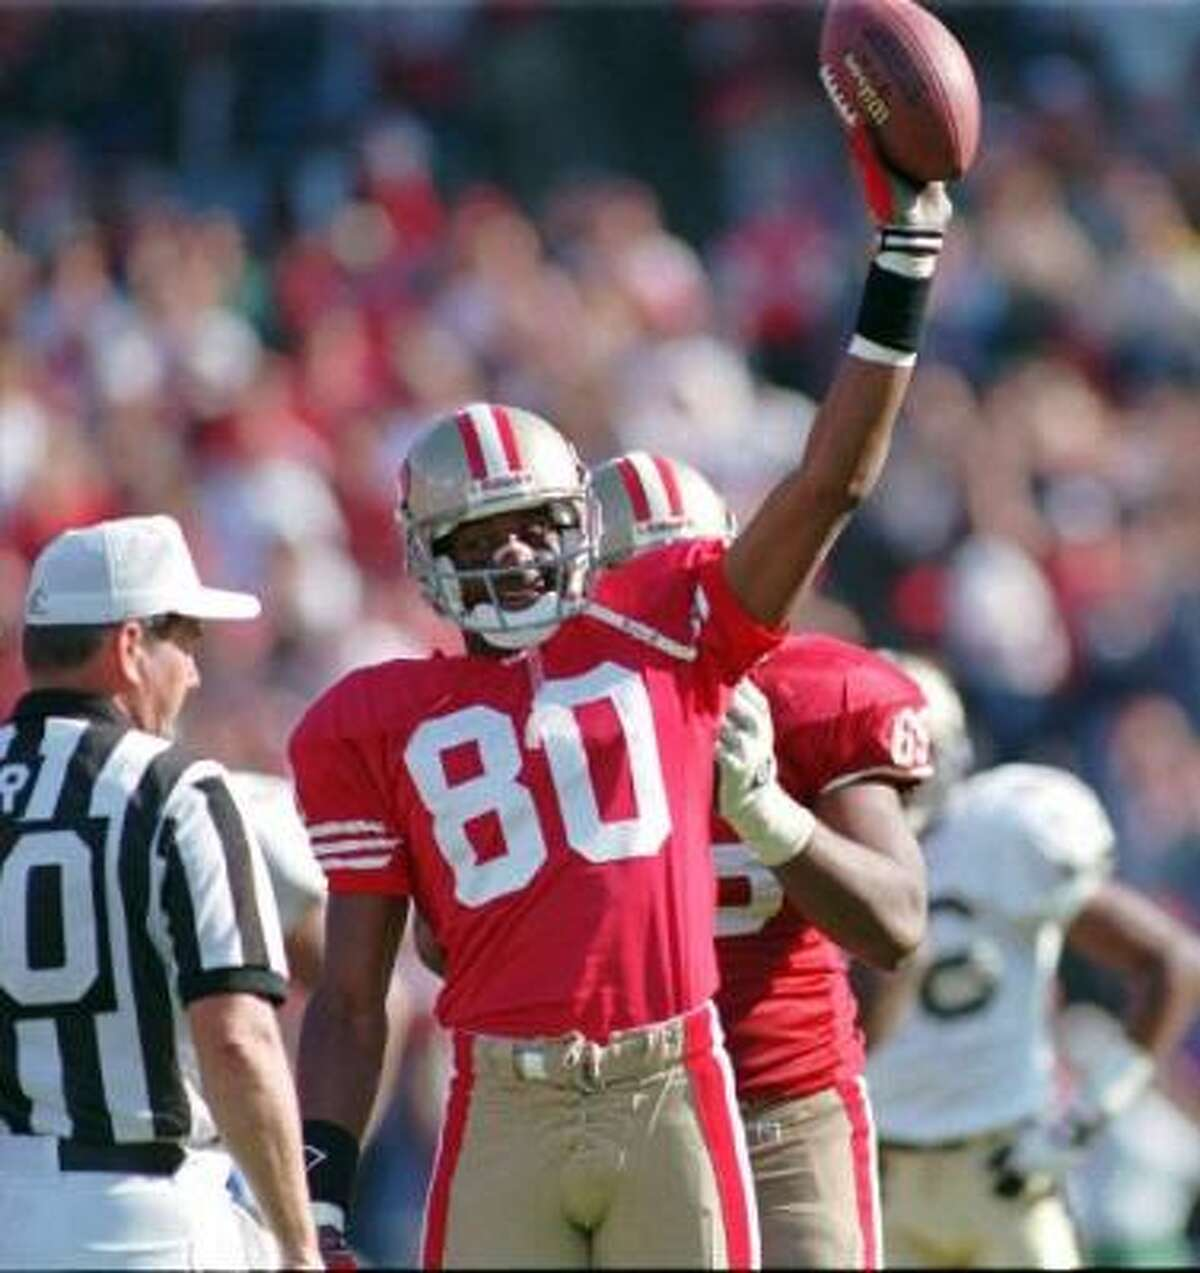 Inductee: Jerry Rice Position: WR Teams: 49ers, Raiders, Seahawks Years: 21 Rice holds the NFL's career receiving record with 1,549 catches for 22,895 yards and 197 touchdowns. He was a two-time NFL Offensive Player of the Year and won three Super Bowls with the 49ers.